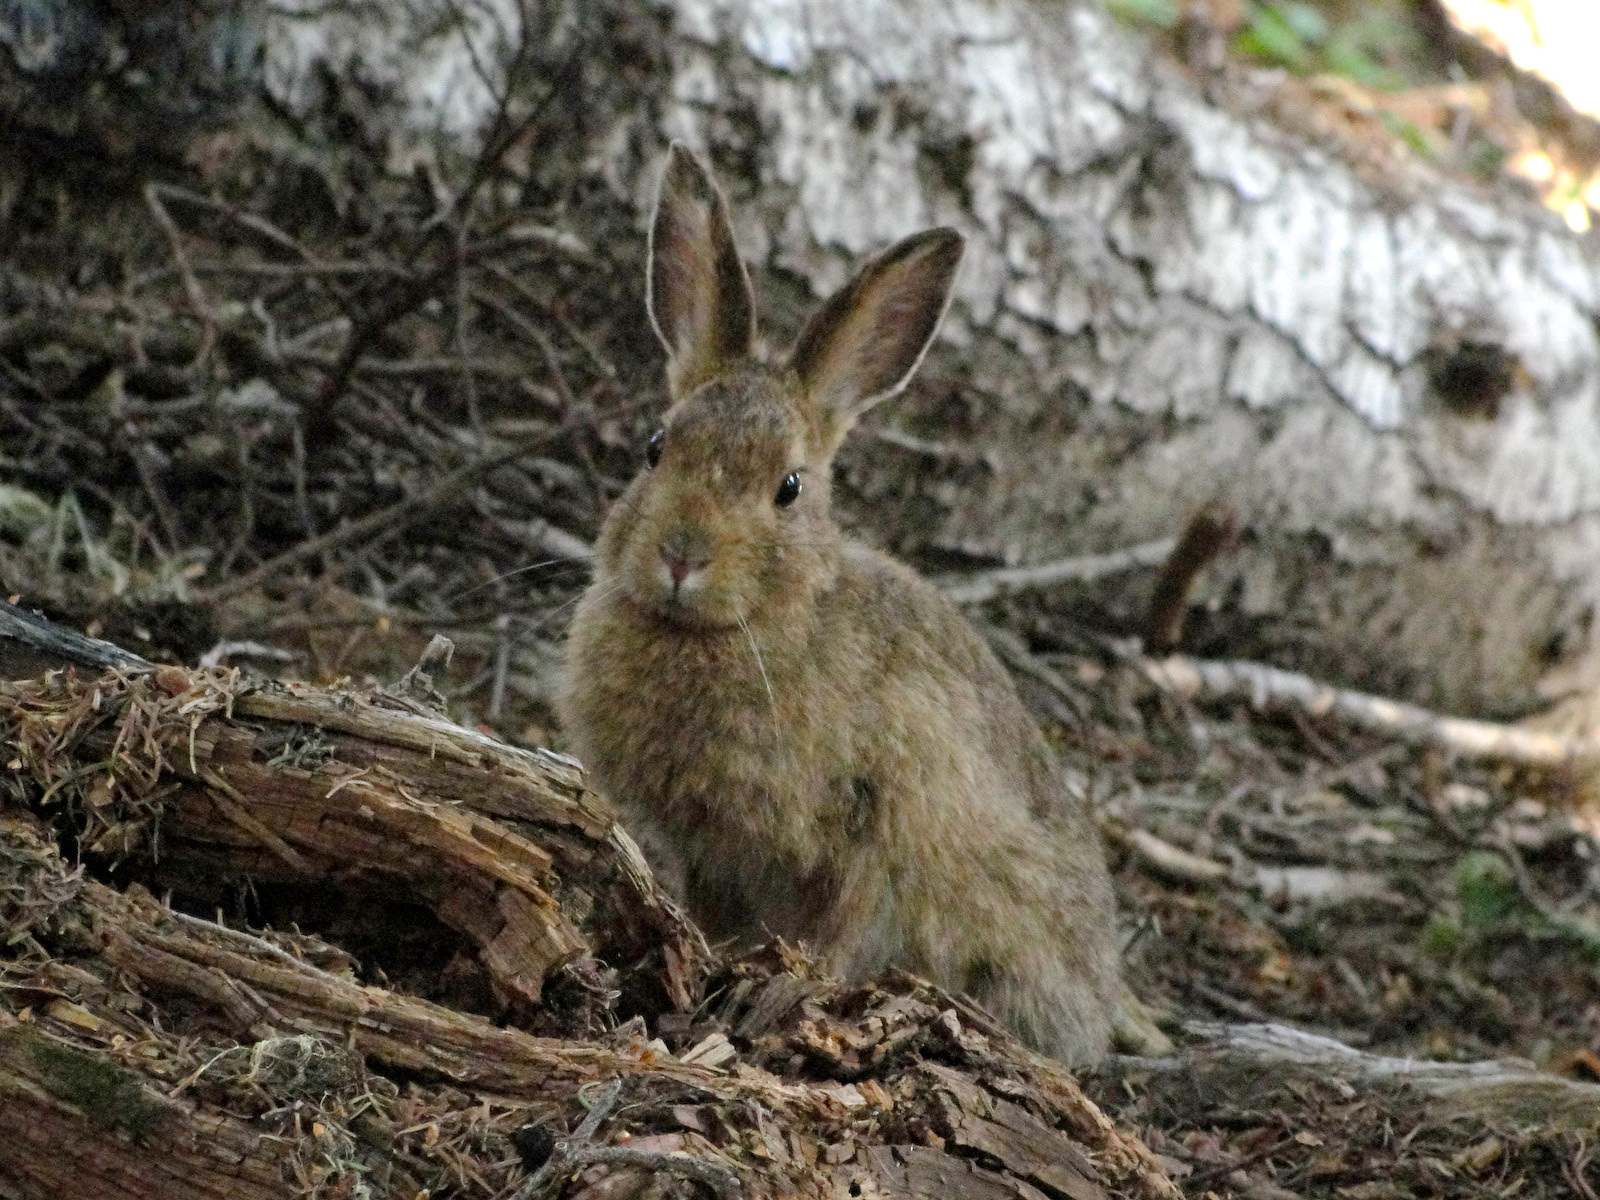 Image of snowshoe hare